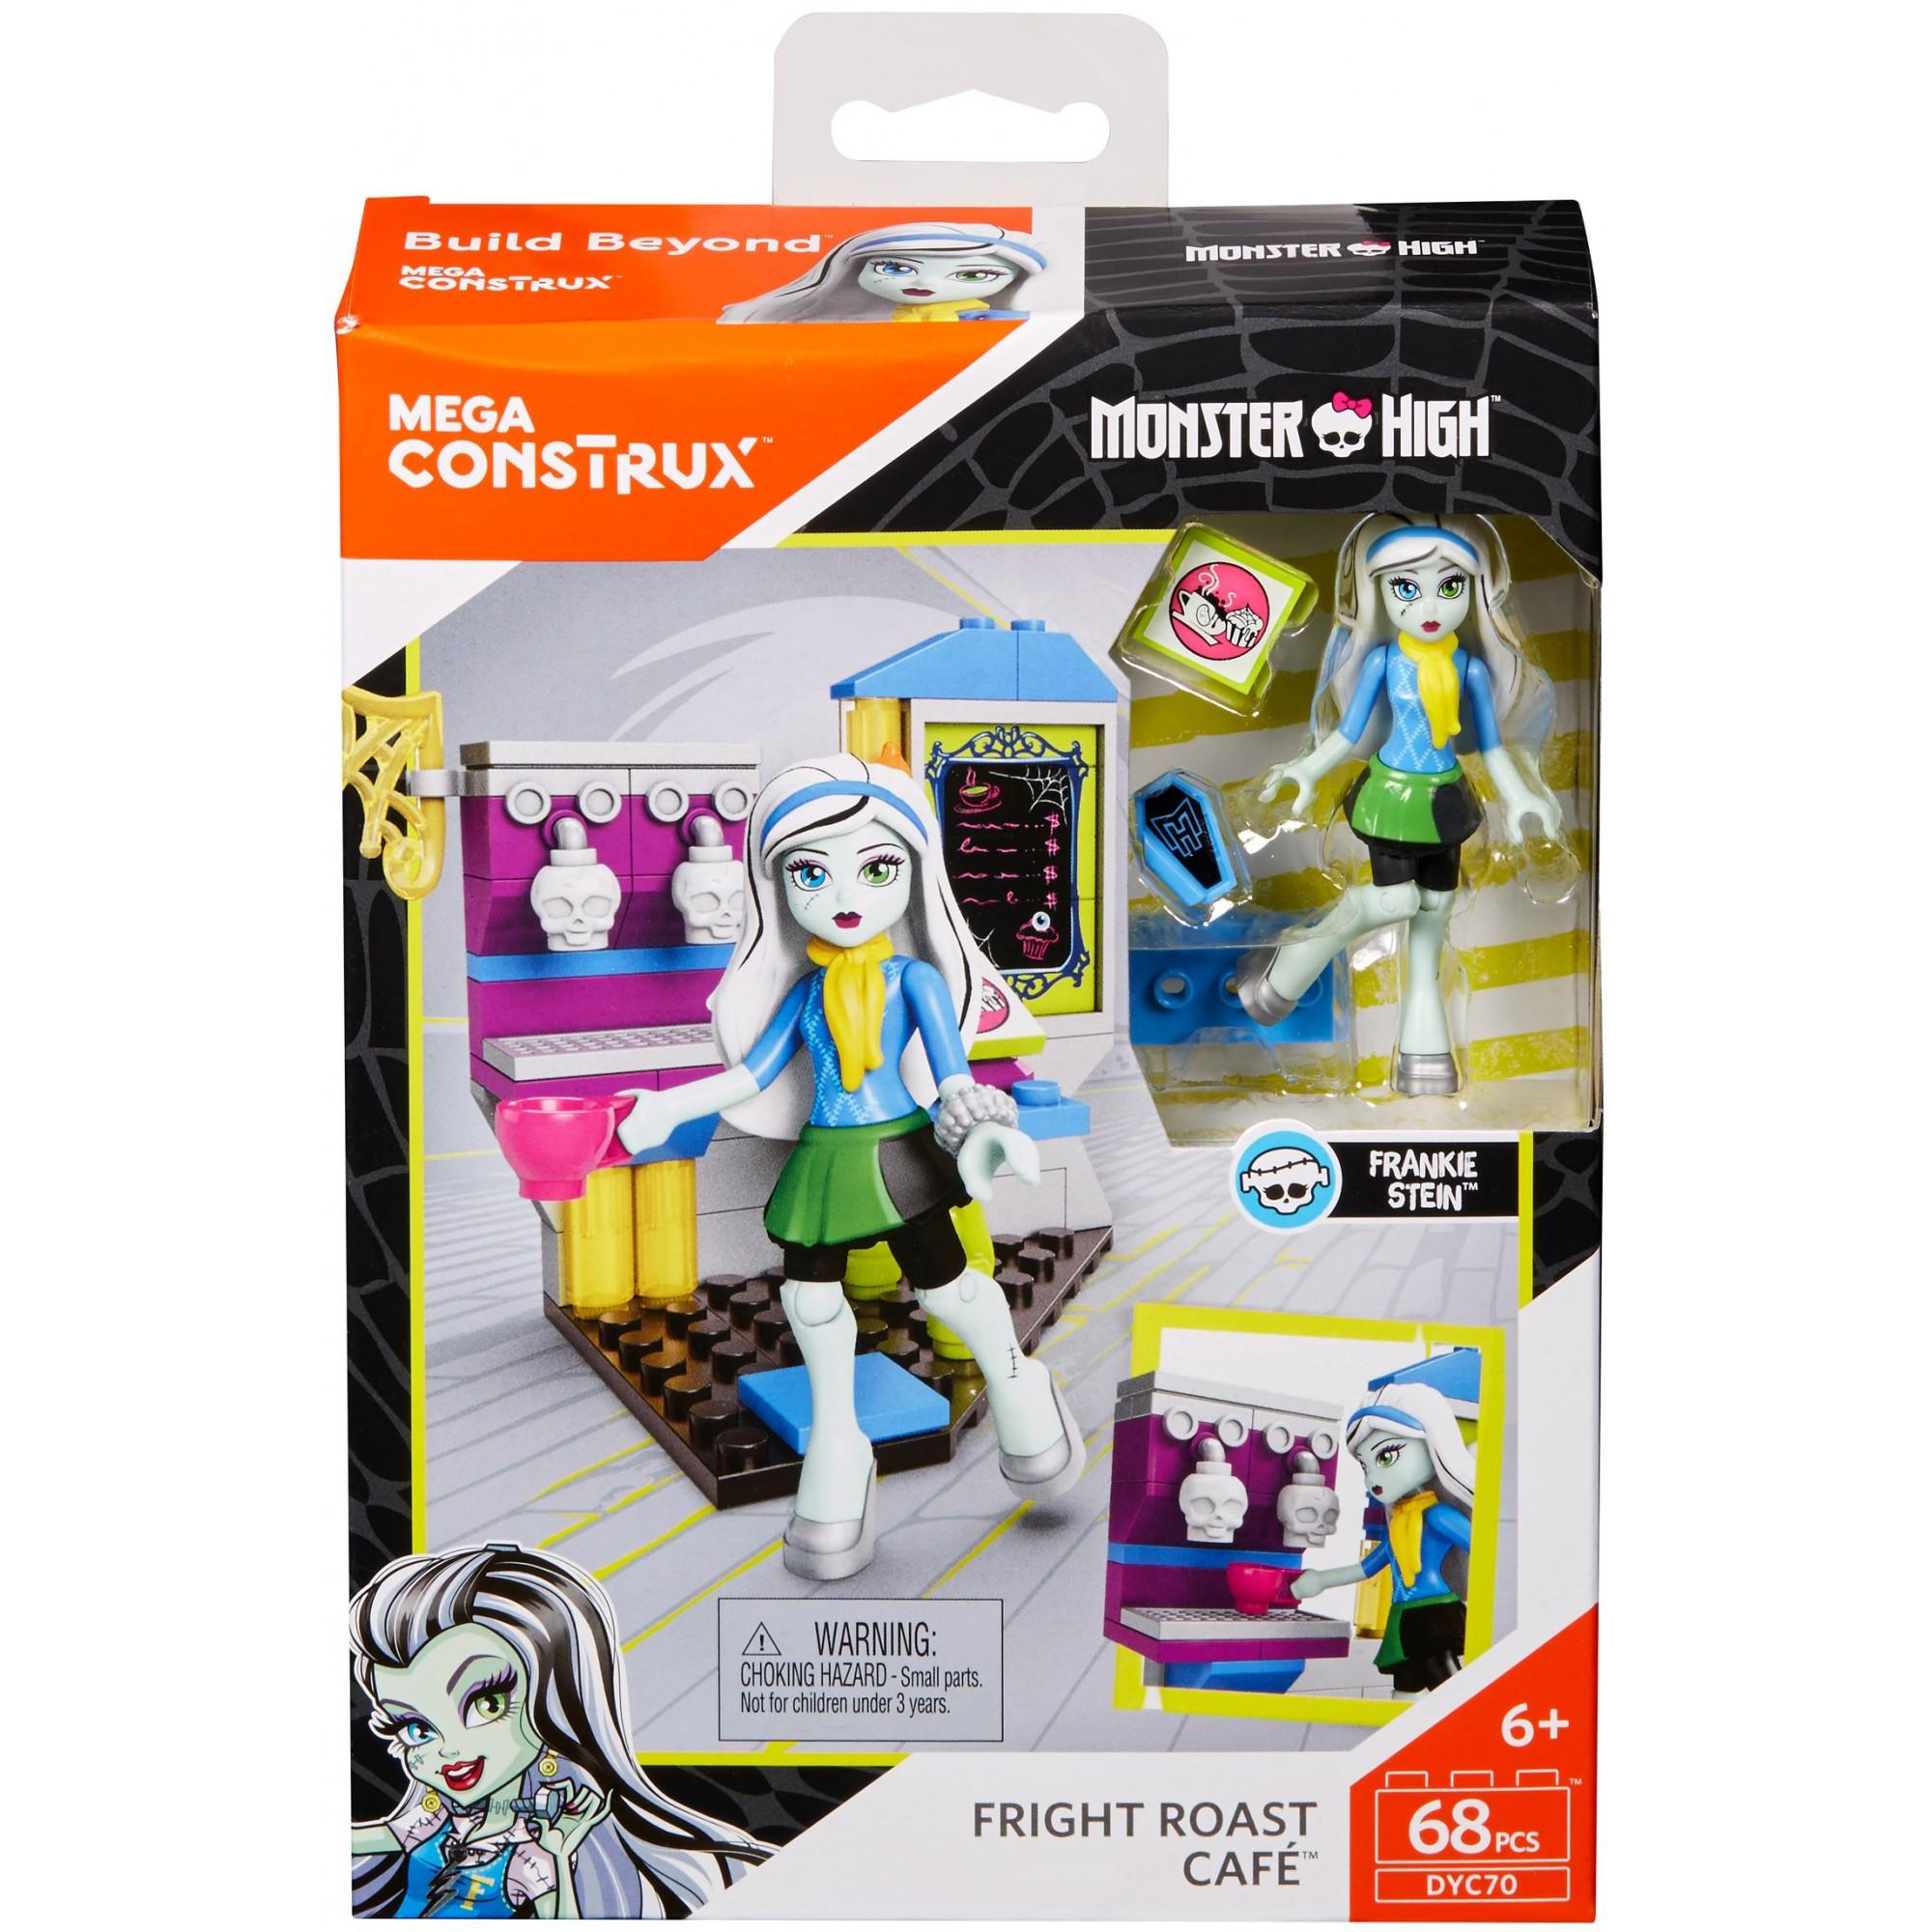 Mega Construx Monster High Fright Roast Cafe by Mattel